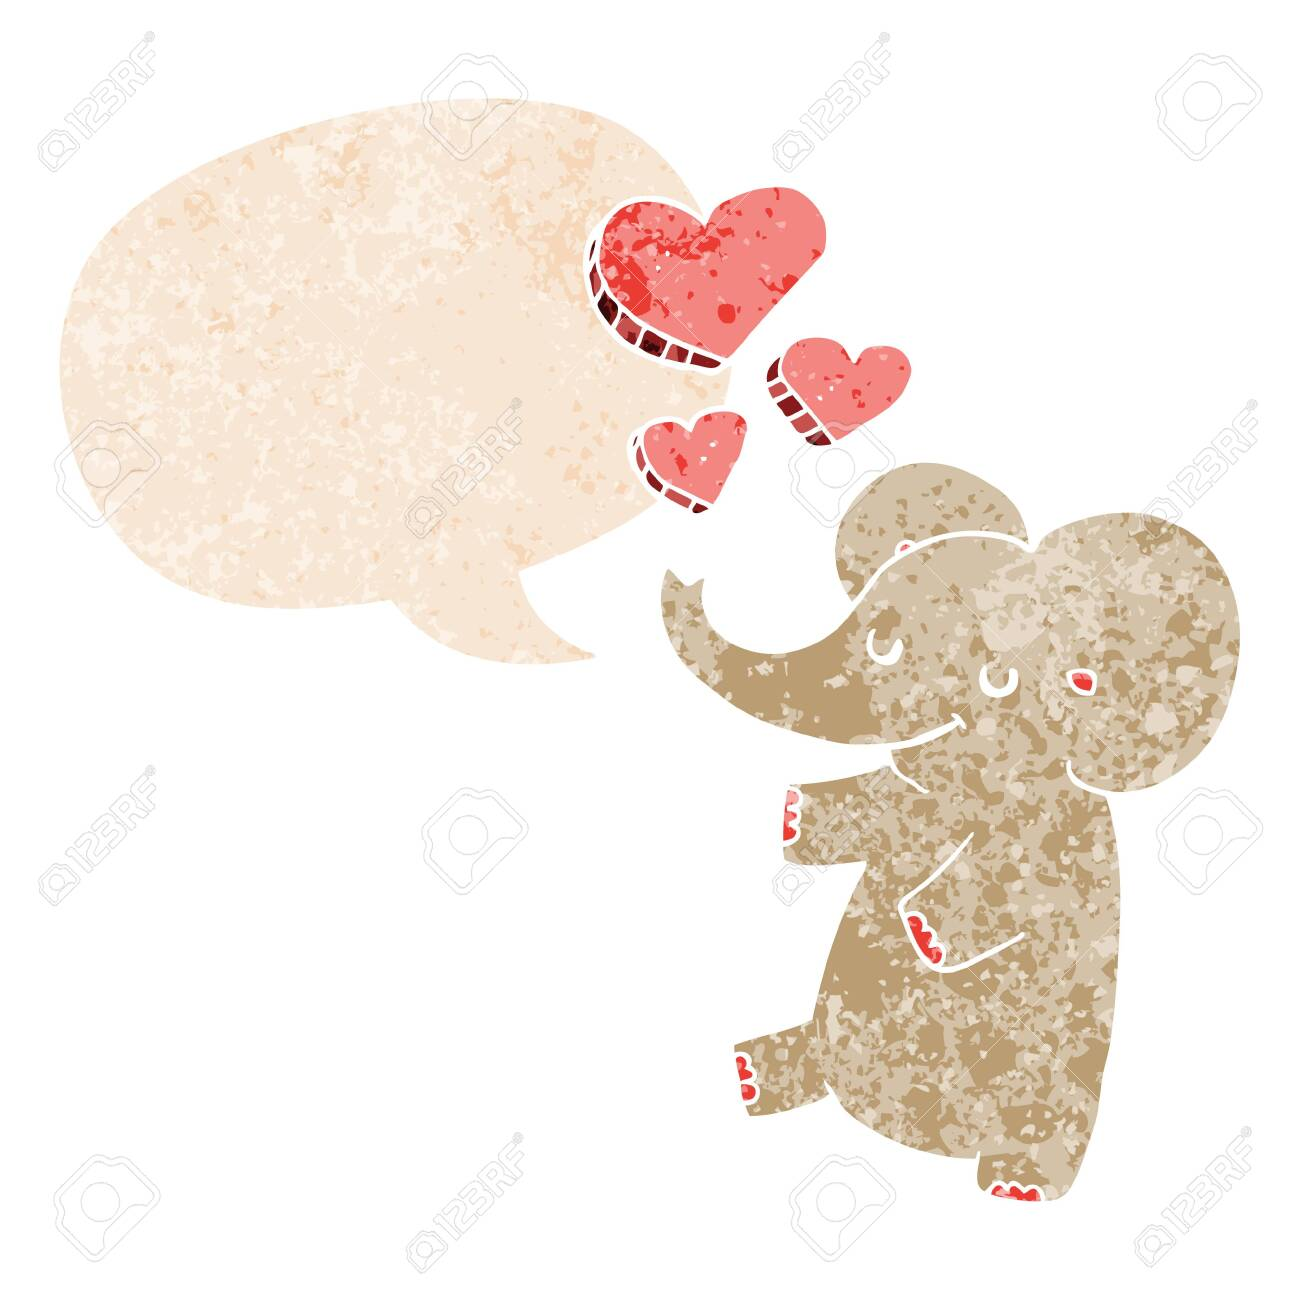 cartoon elephant with love hearts with speech bubble in grunge distressed retro textured style - 128706560